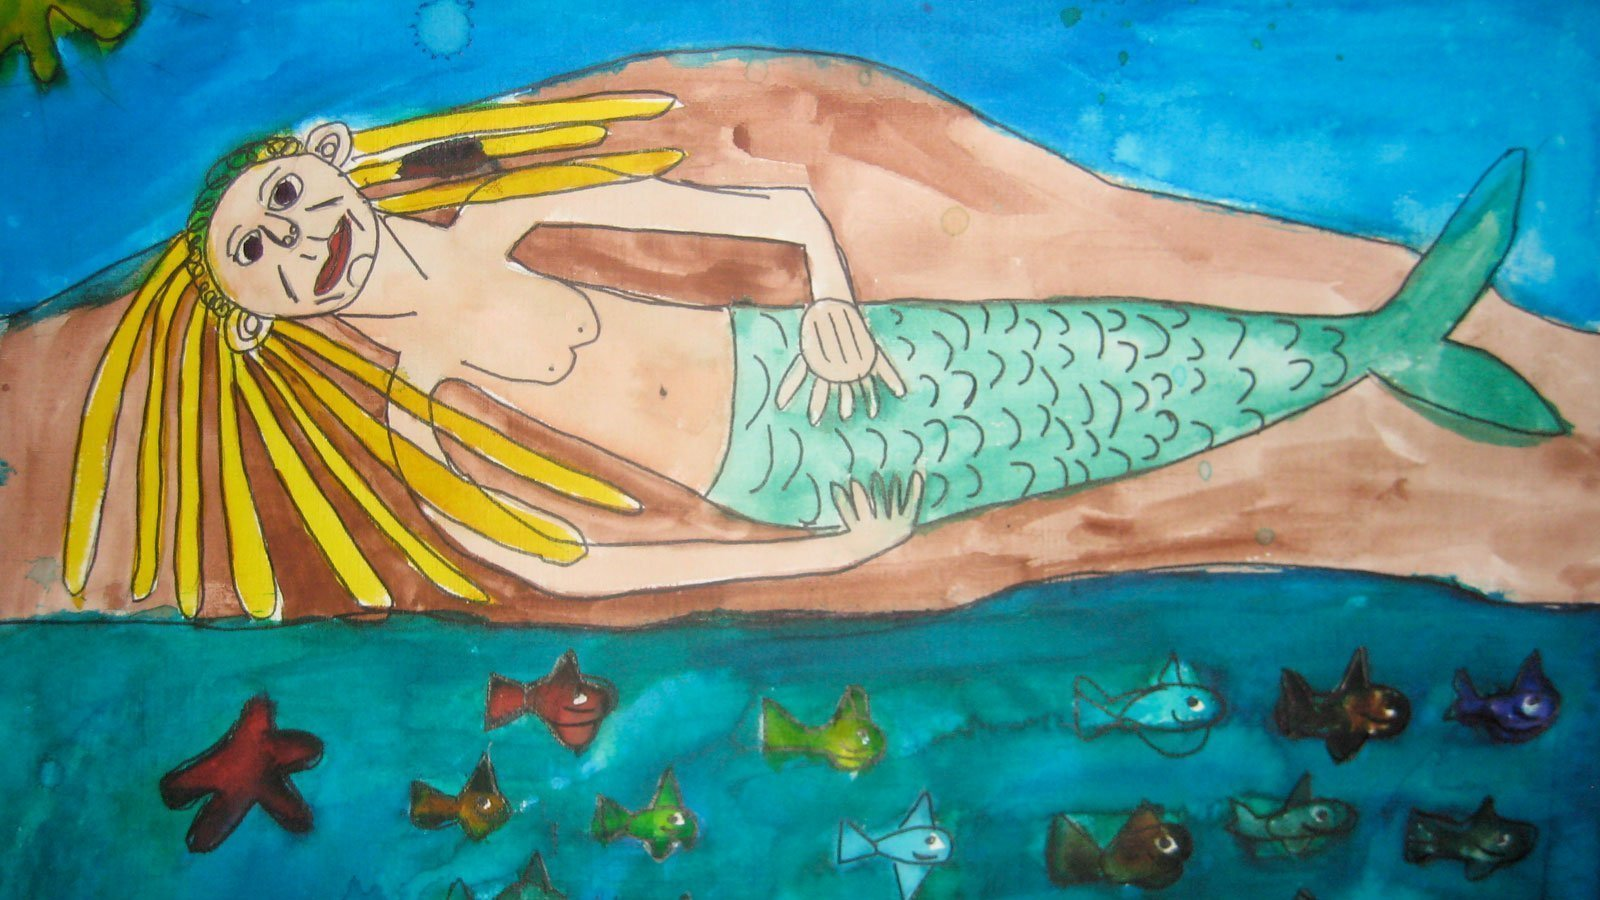 mermaid painting zion levy stewart